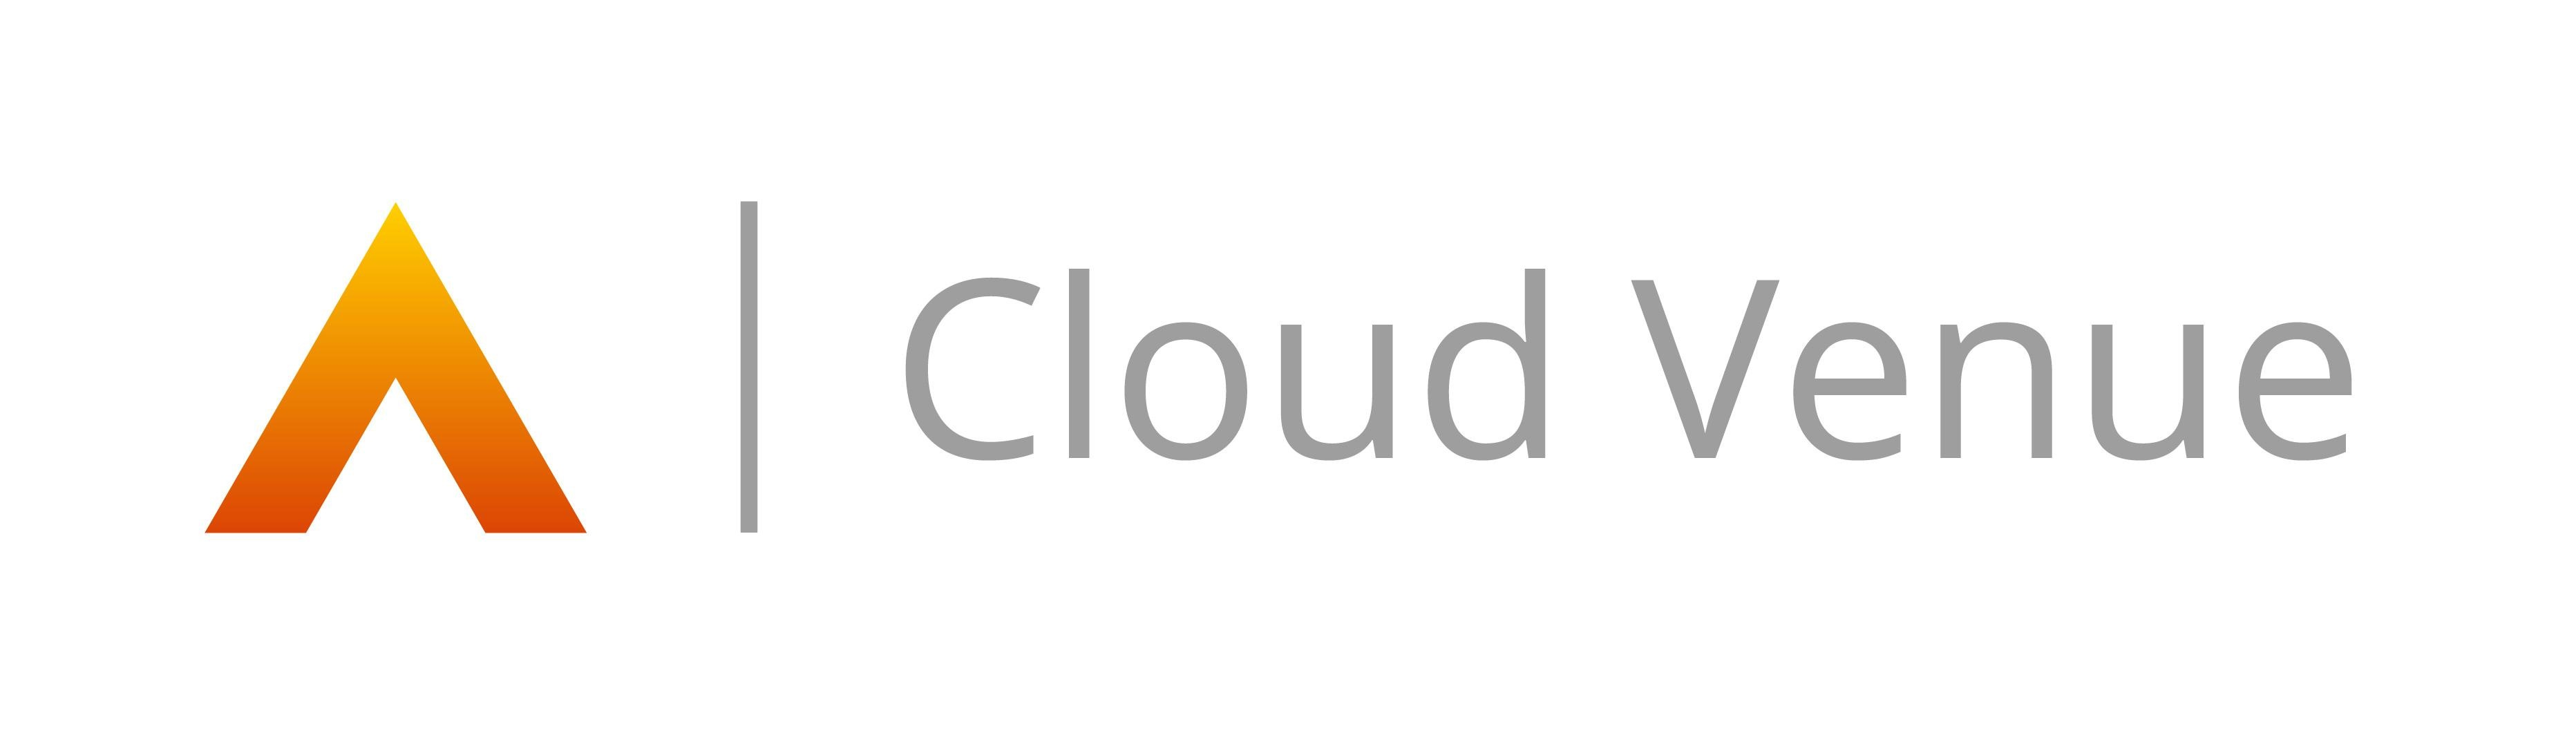 Powered by Cloud Venue from Advanced